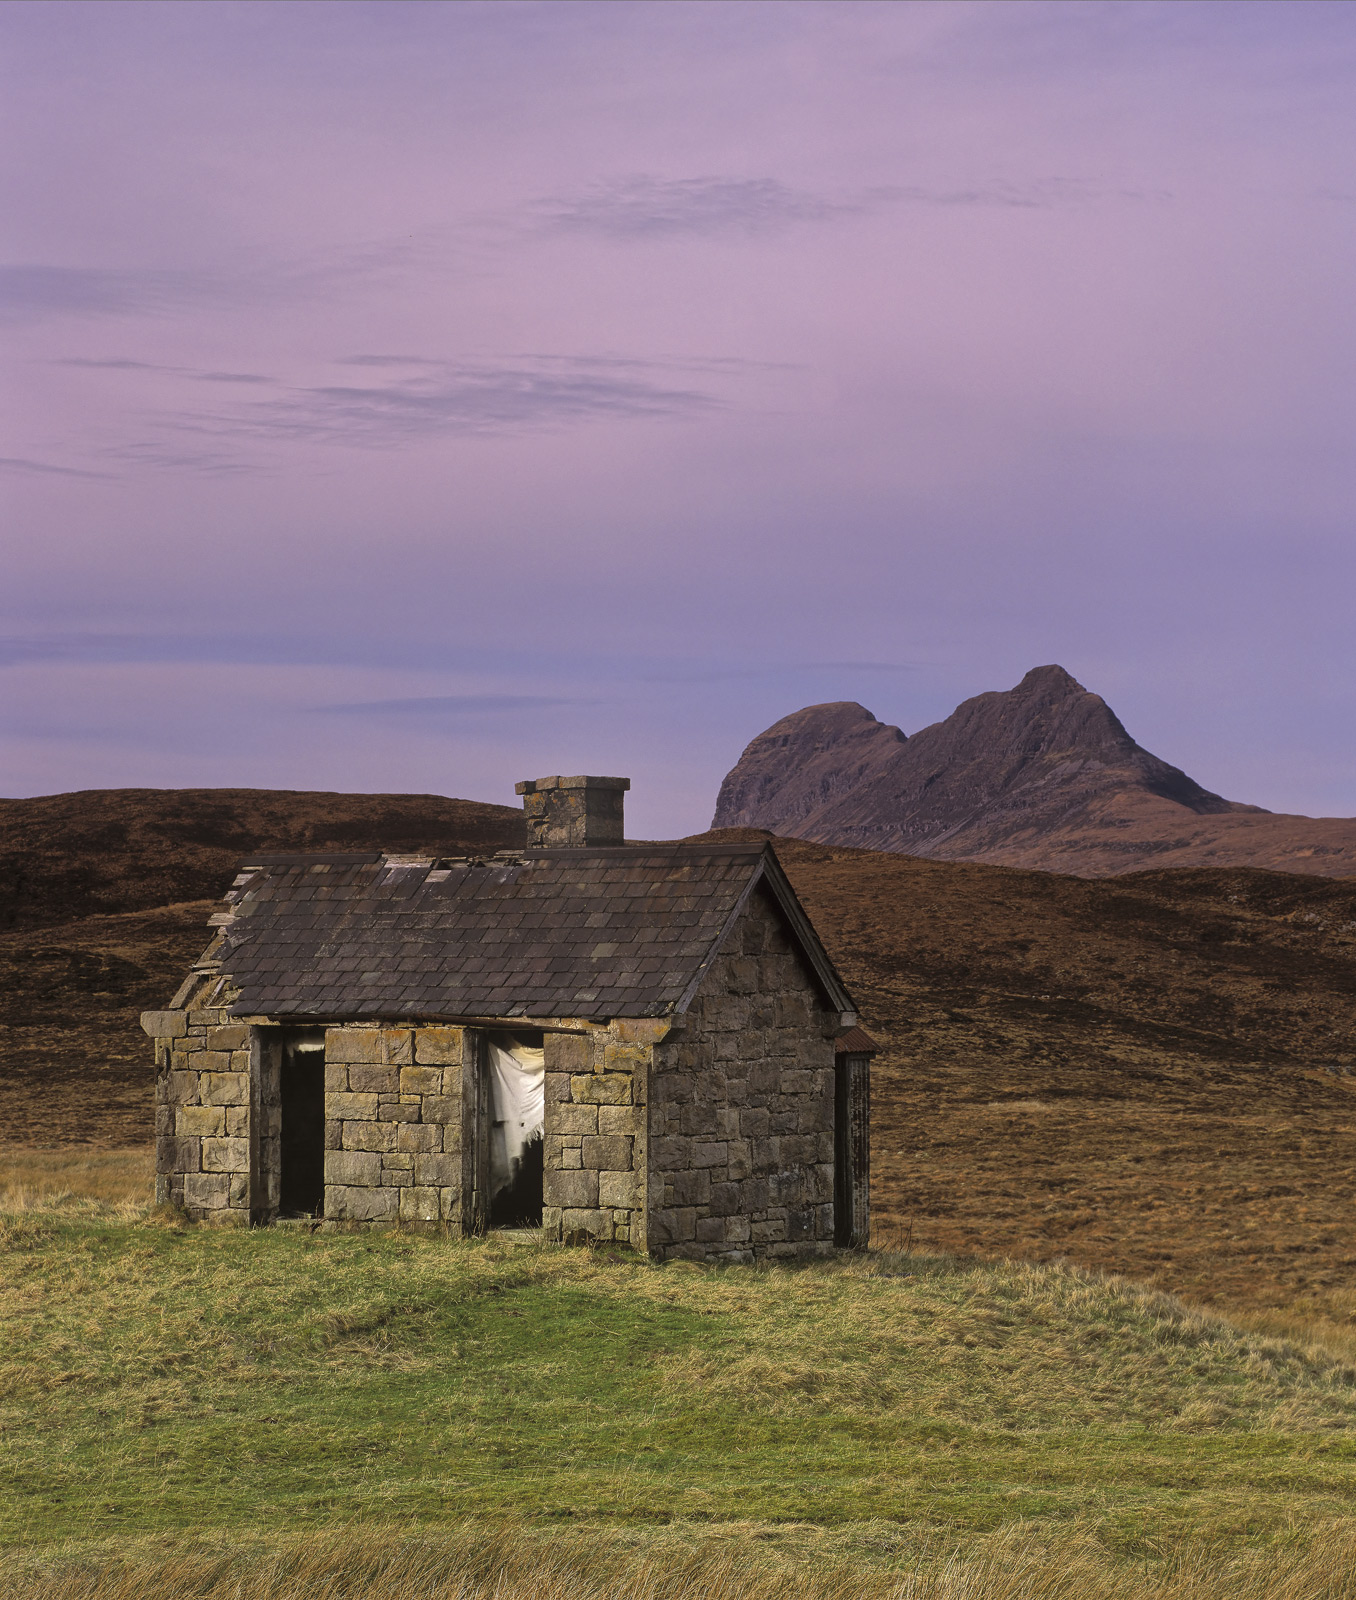 In Tatters, Elphin, Assynt, Scotland, stone, bothy, grass, mound, road, character, Cul Mor, Suilven, curtains, plum, sky, photo